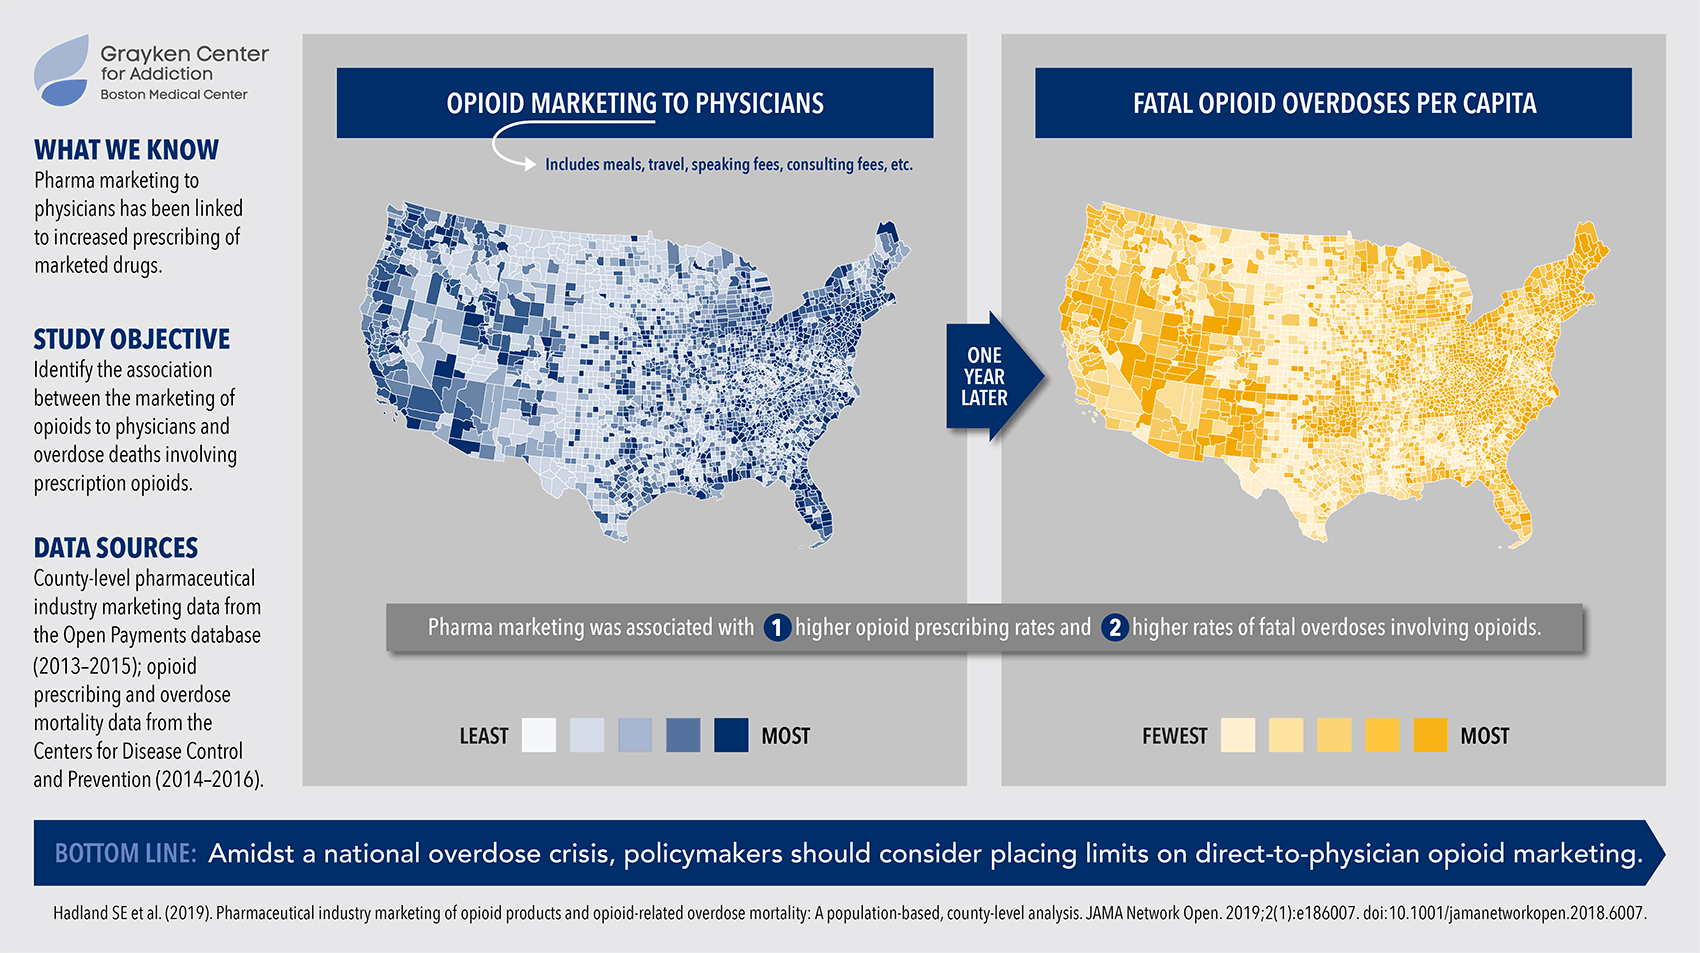 Opioid Overdose and Medical Marketing Graphic